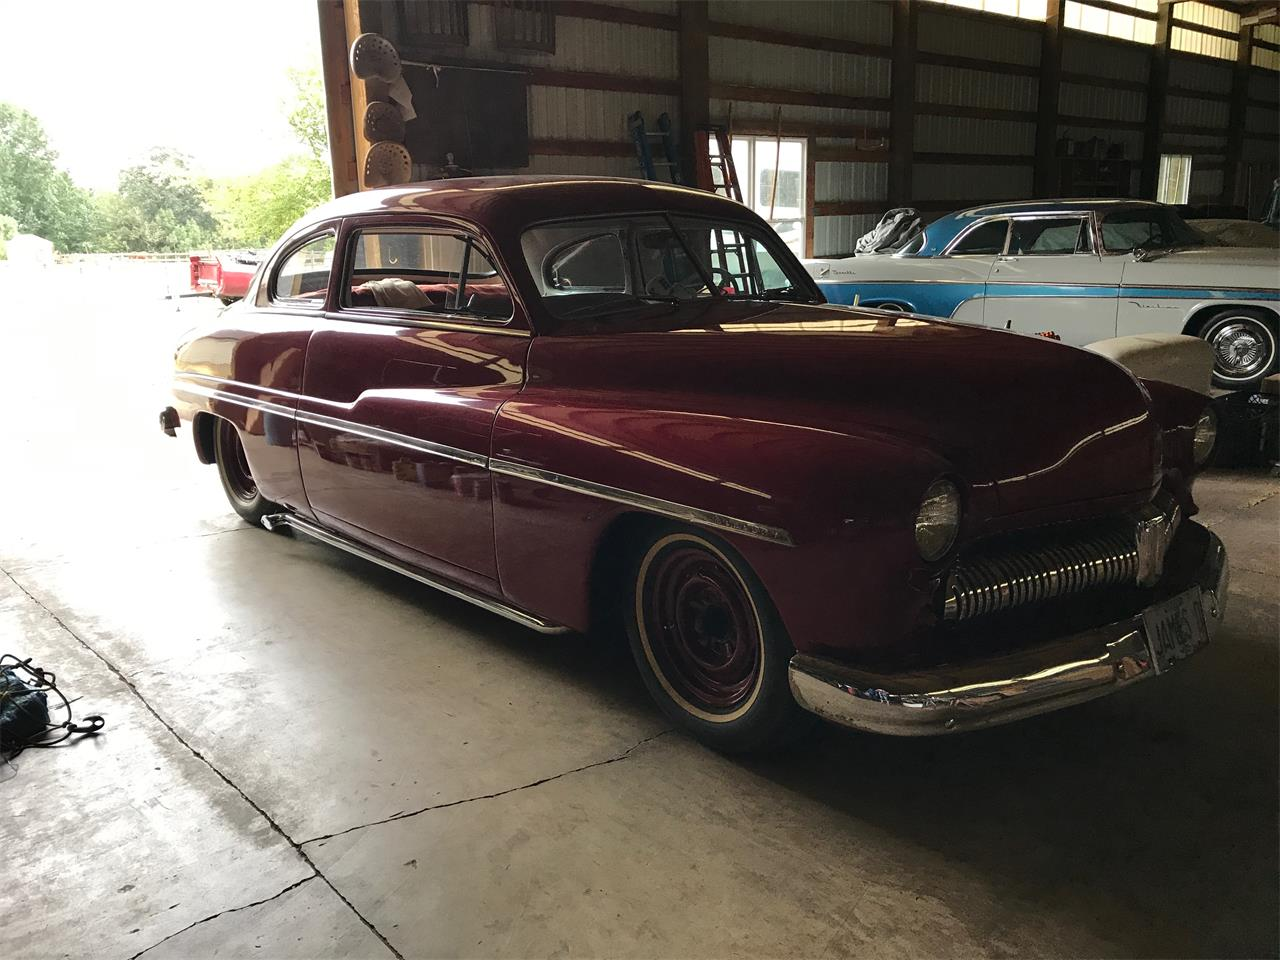 Large Picture of Classic '49 Mercury 2-Dr Coupe located in Hillsboro Oregon Offered by a Private Seller - LP81